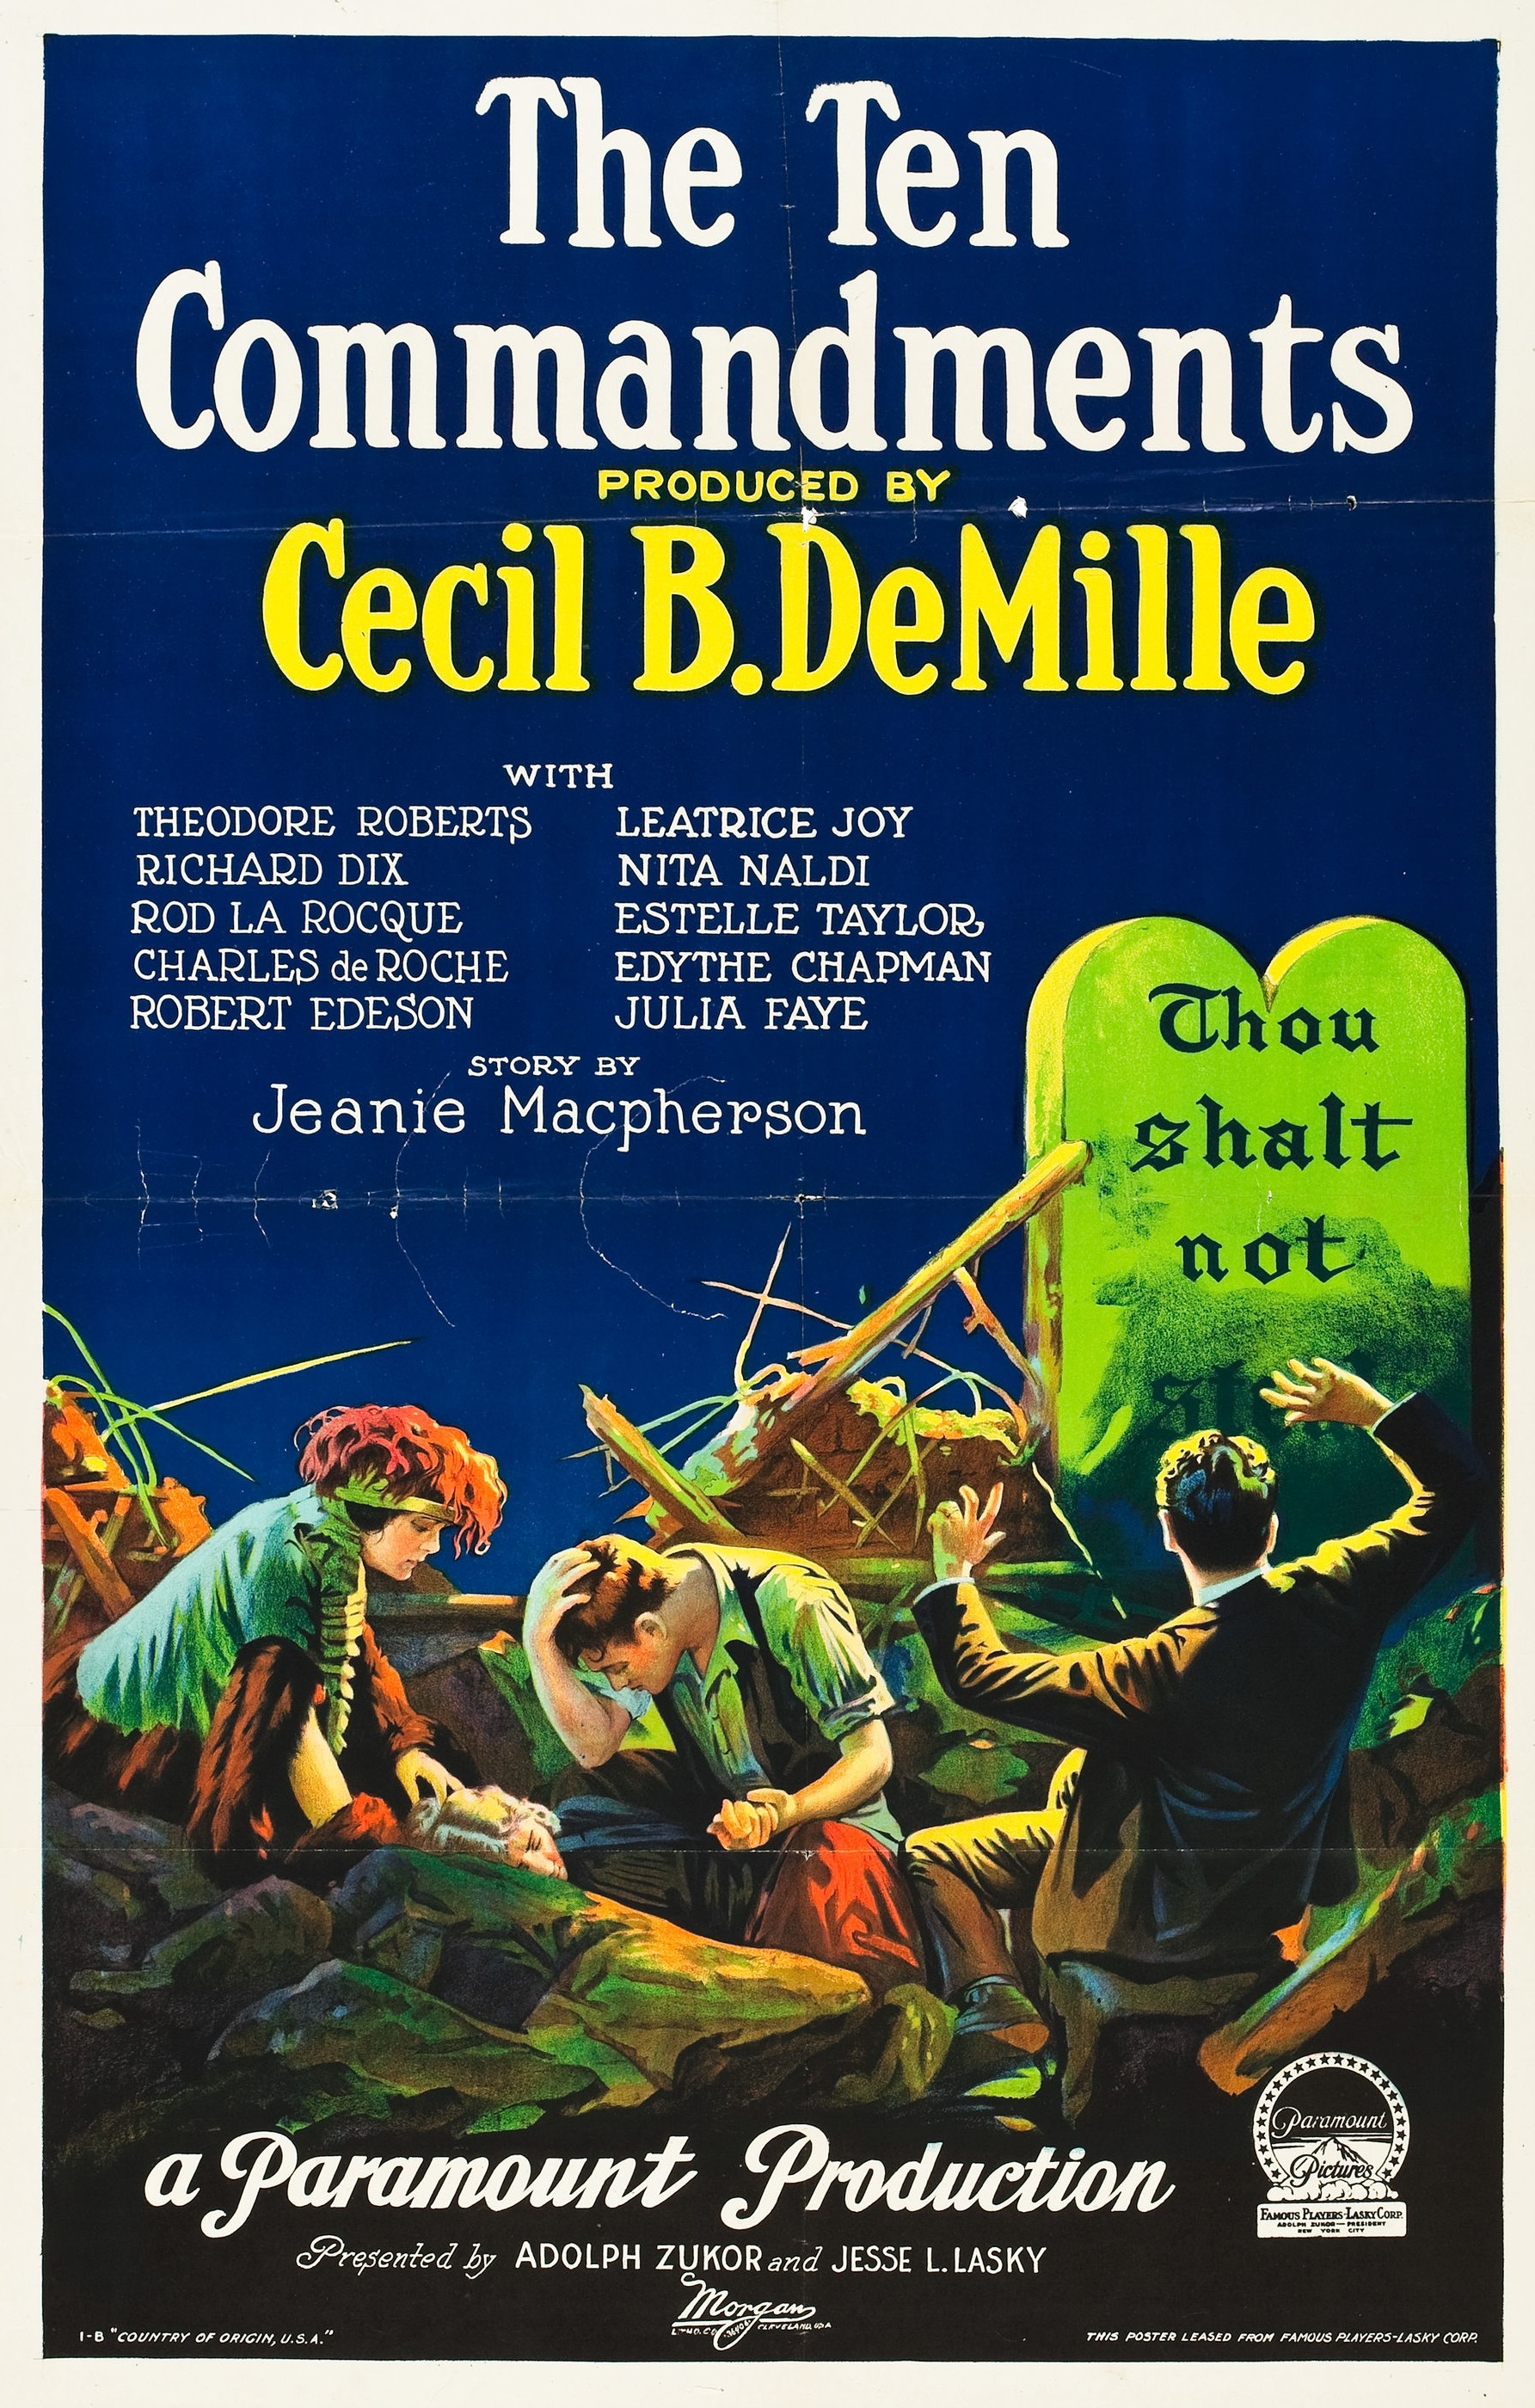 Image result for cecil b demille's 1923 movie the ten commandments